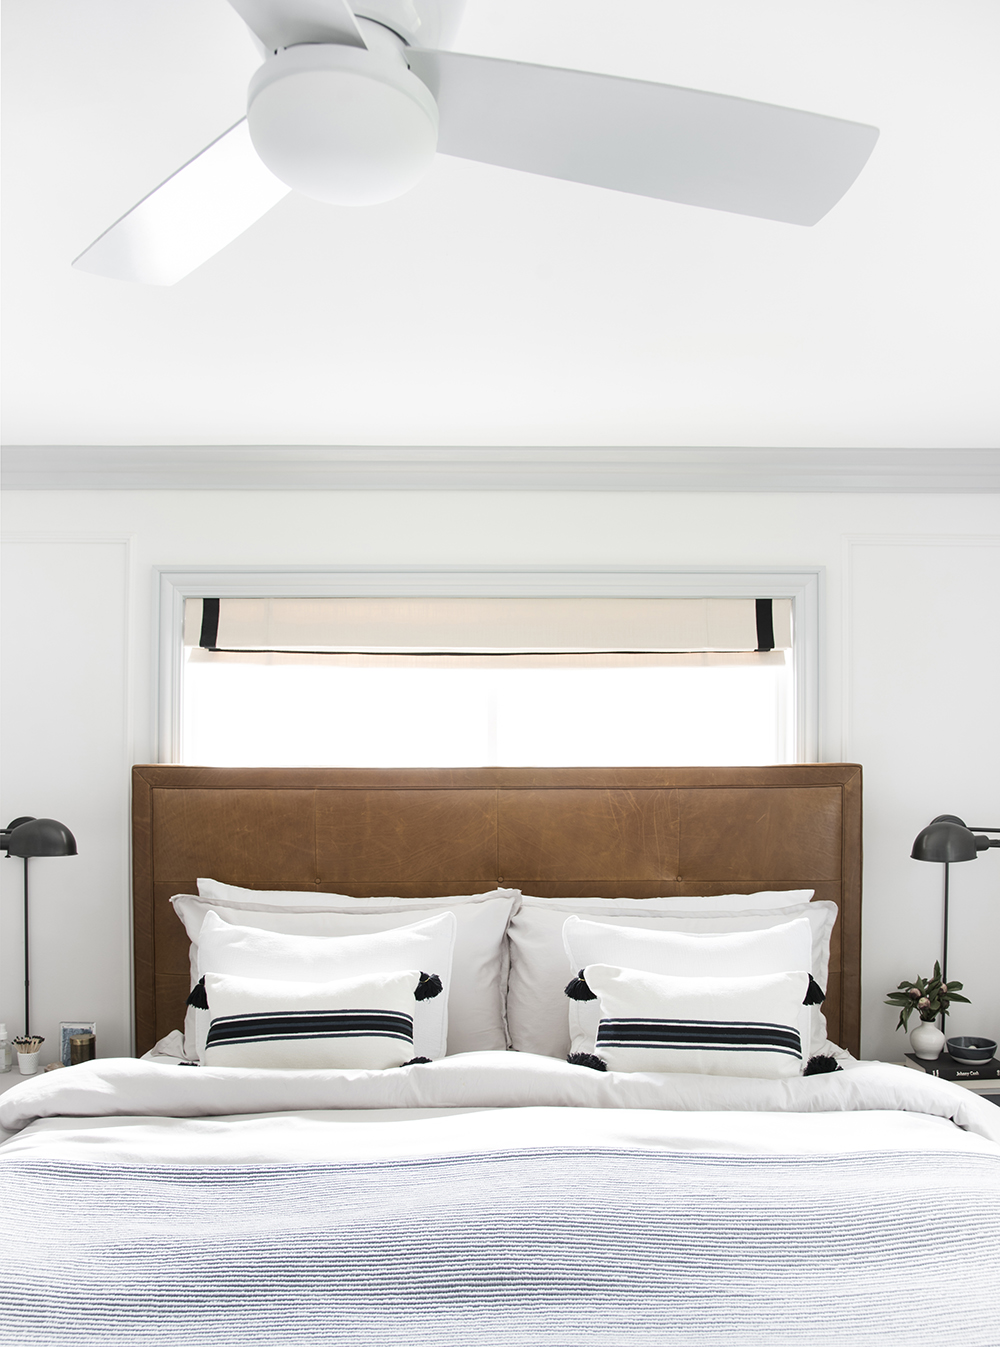 Amazon Finds : Beds - roomfortuesday.com